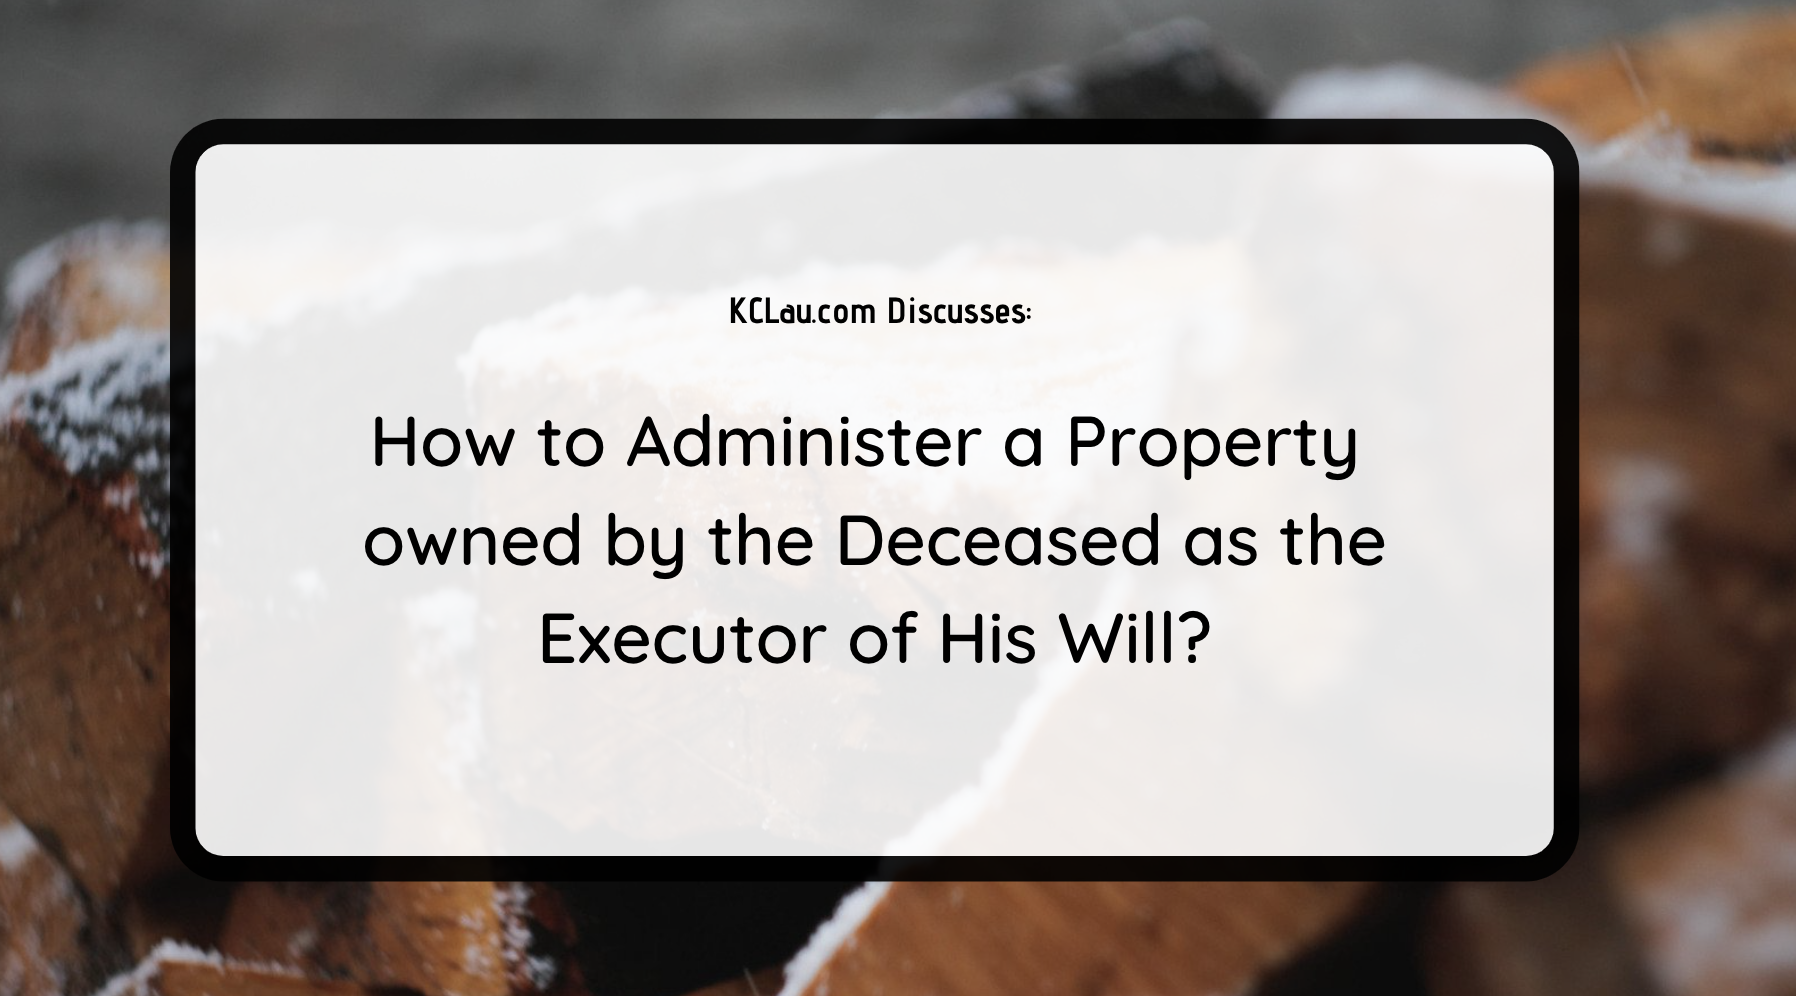 How to Administer a Property owned by the Deceased as the Executor of His Will?